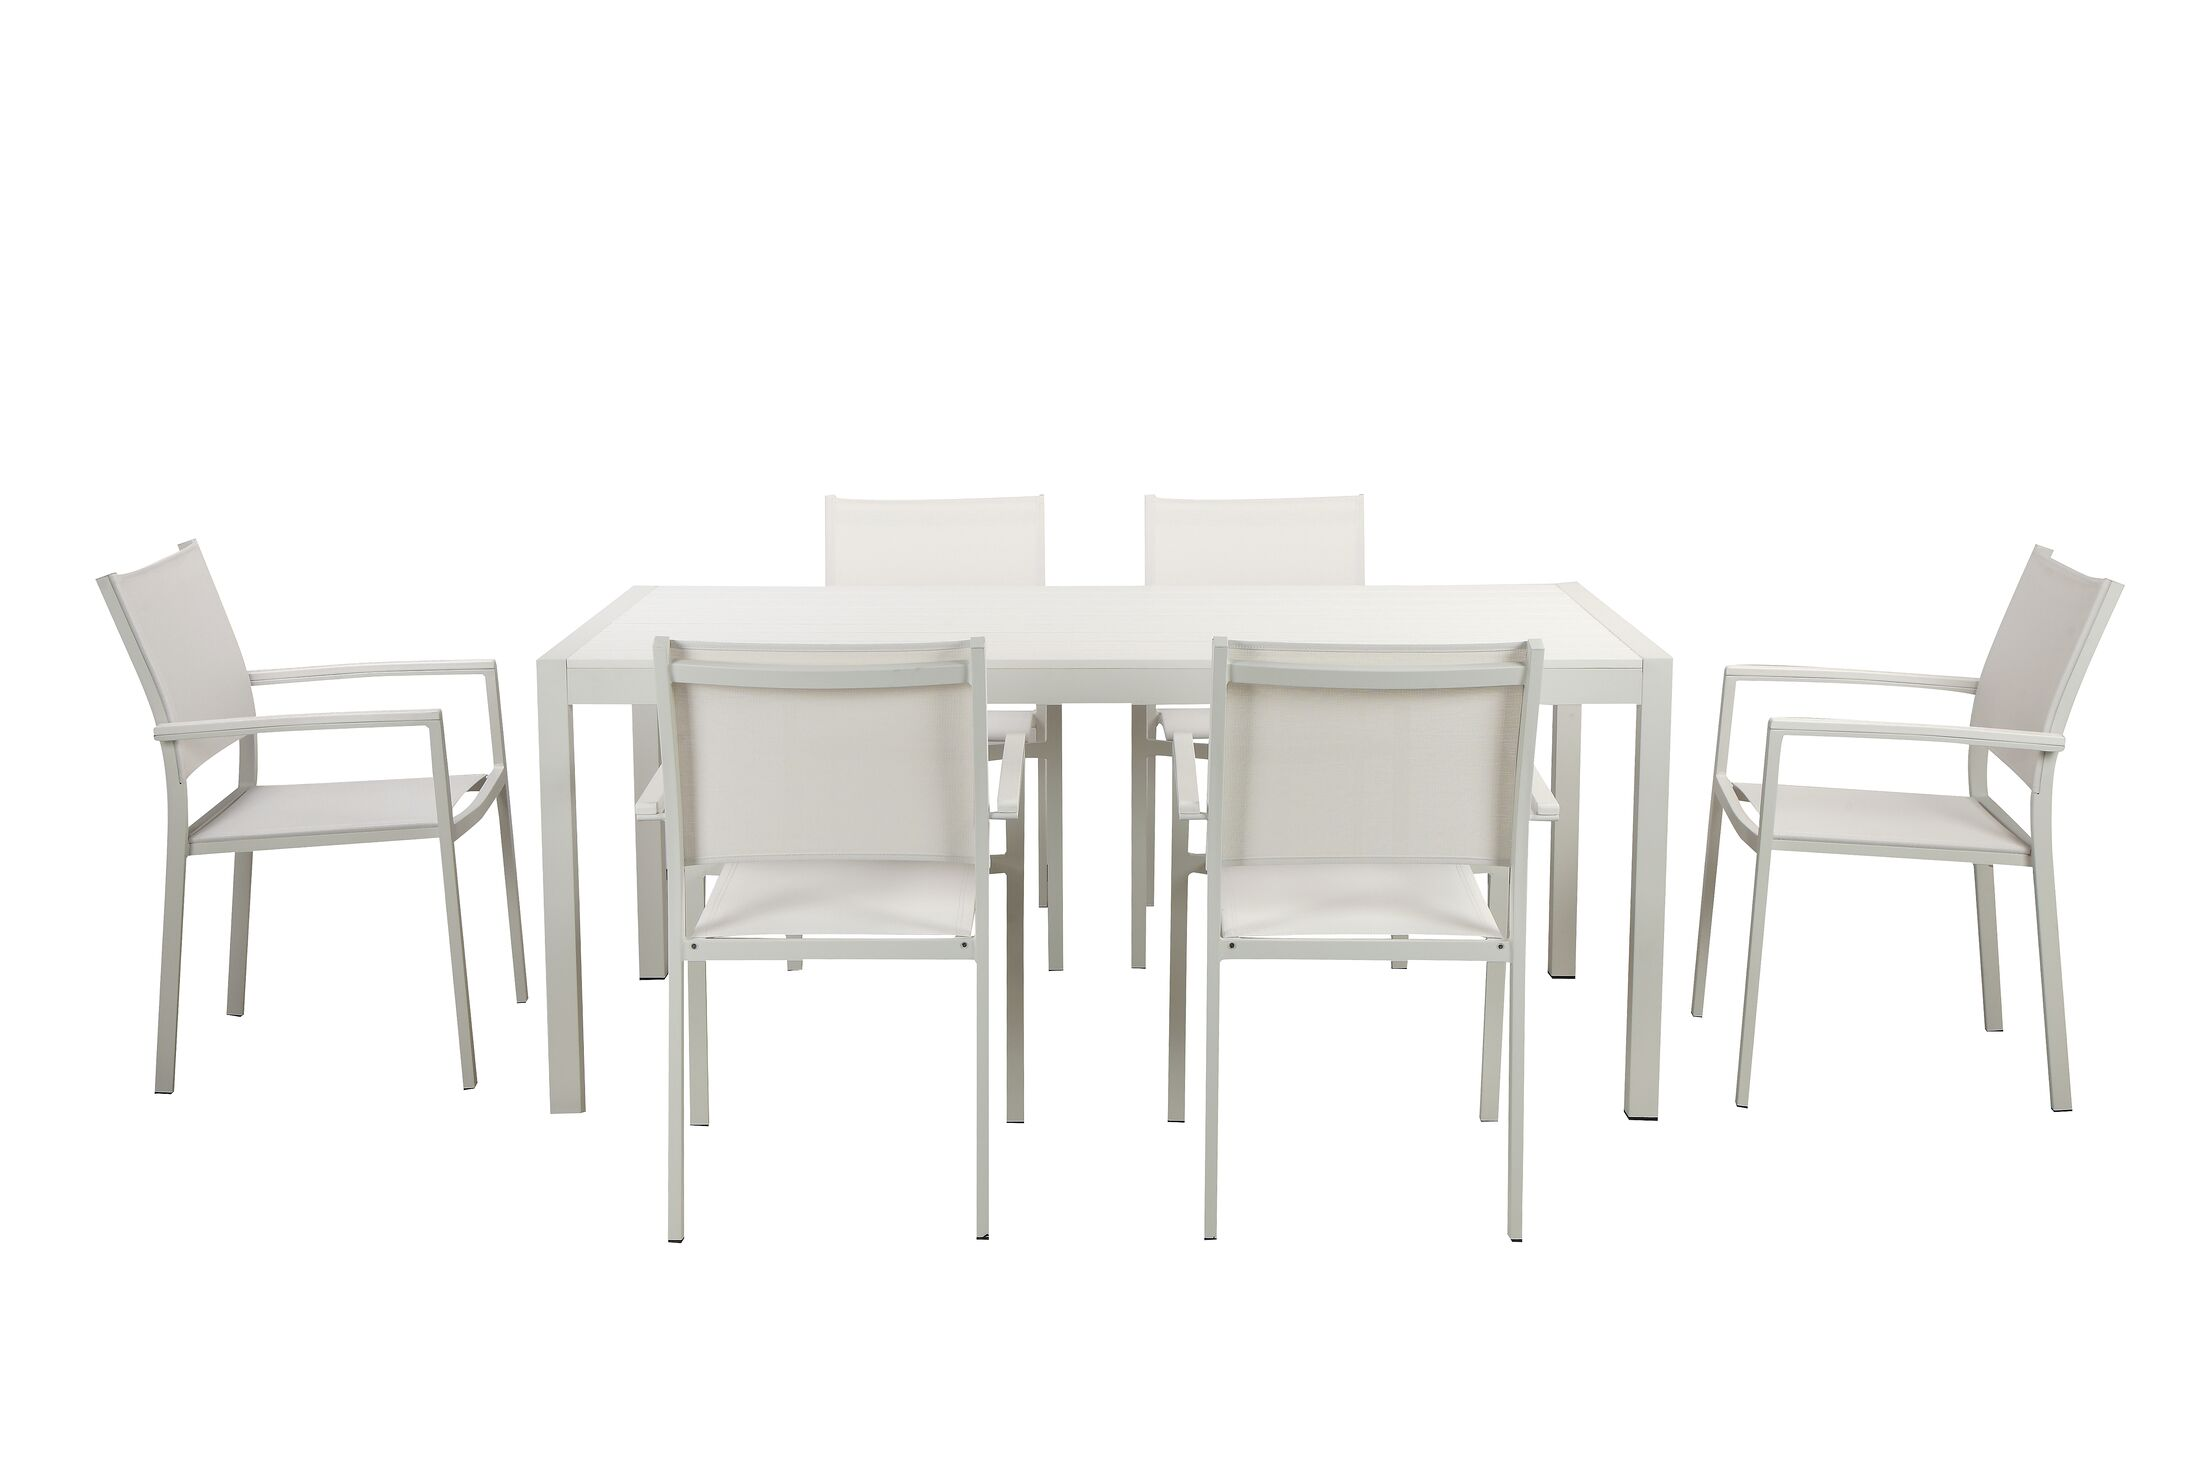 Alaia 7 Piece Dining Set Top Color: White, Leg Finish: White Anodized Aluminum